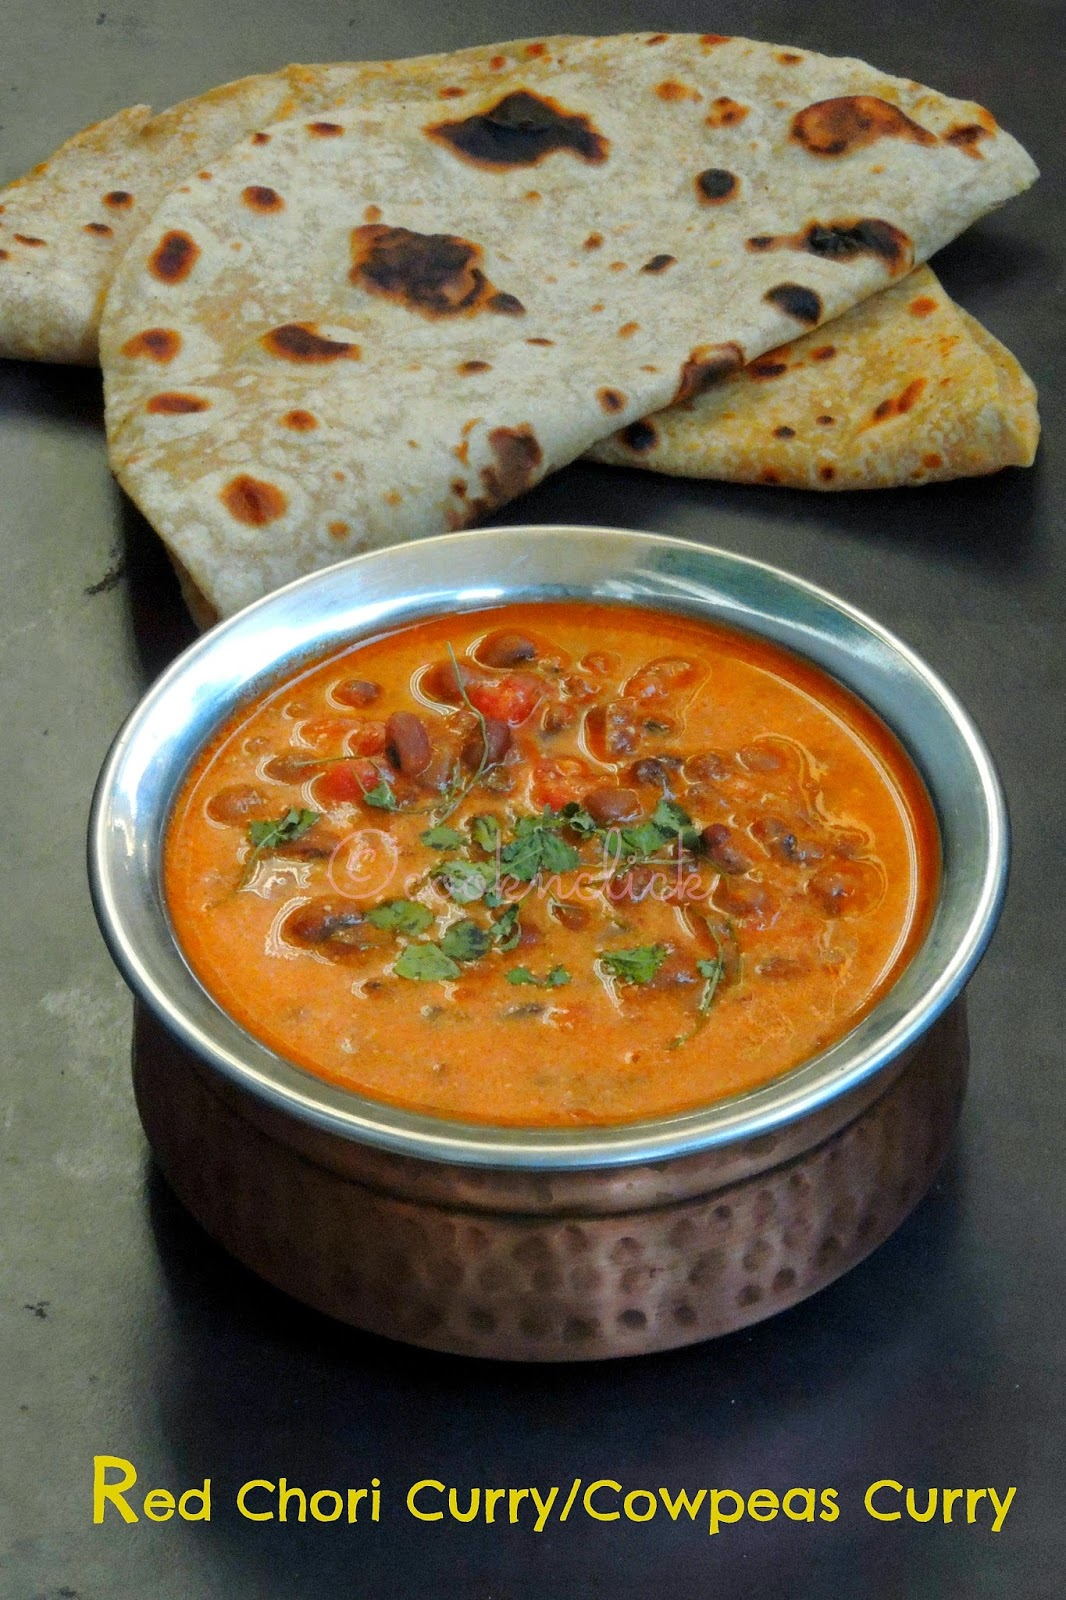 Red chori curry, cowpeas curry without Onion and garlic